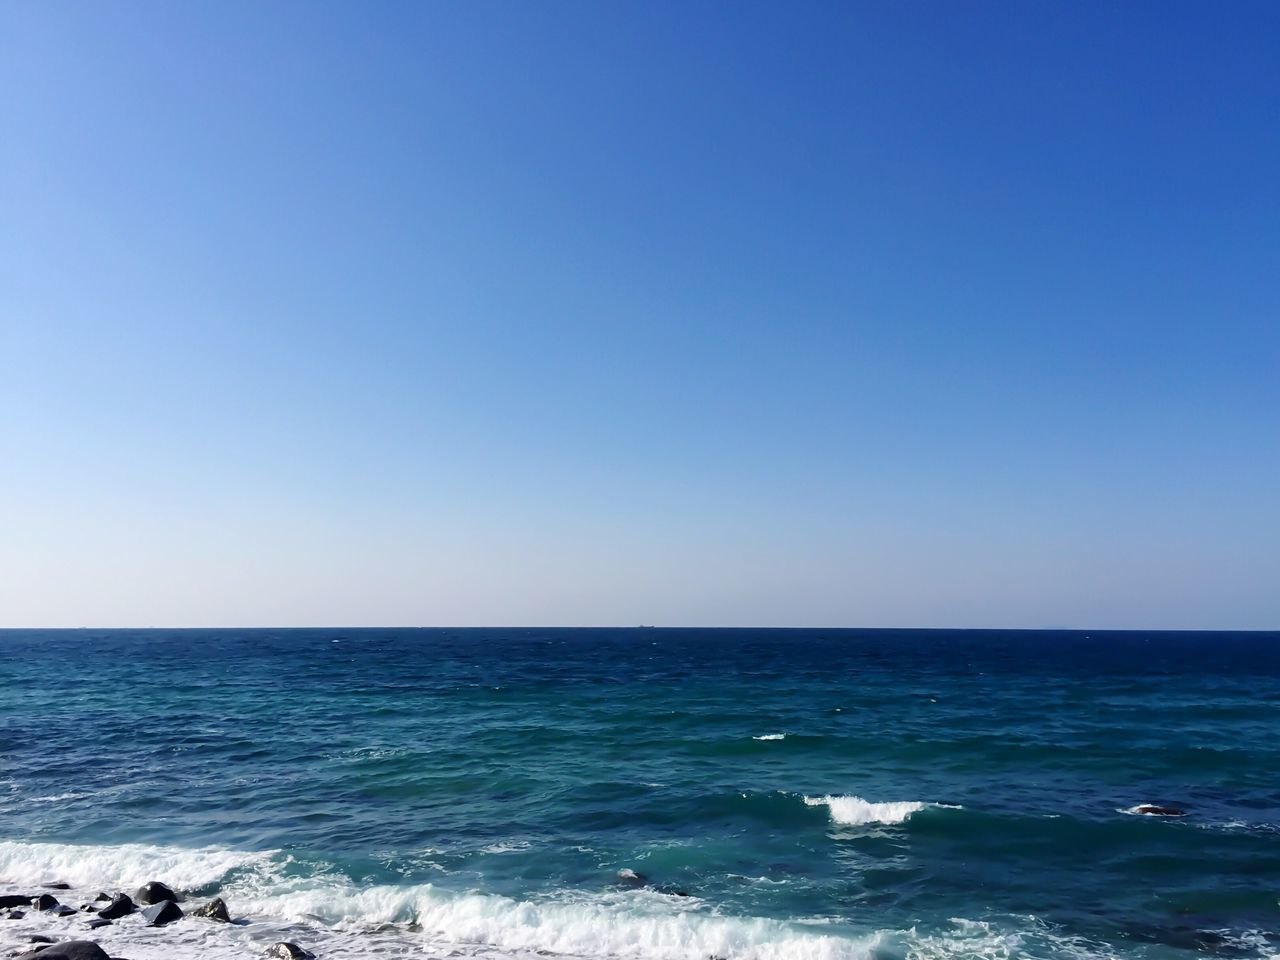 Sea Copy Space Water Horizon Over Water Blue Scenics Beauty In Nature Clear Sky Nature Tranquility Tranquil Scene Outdoors No People Beach Day Sky Fukuoka,Japan Iphonephotography